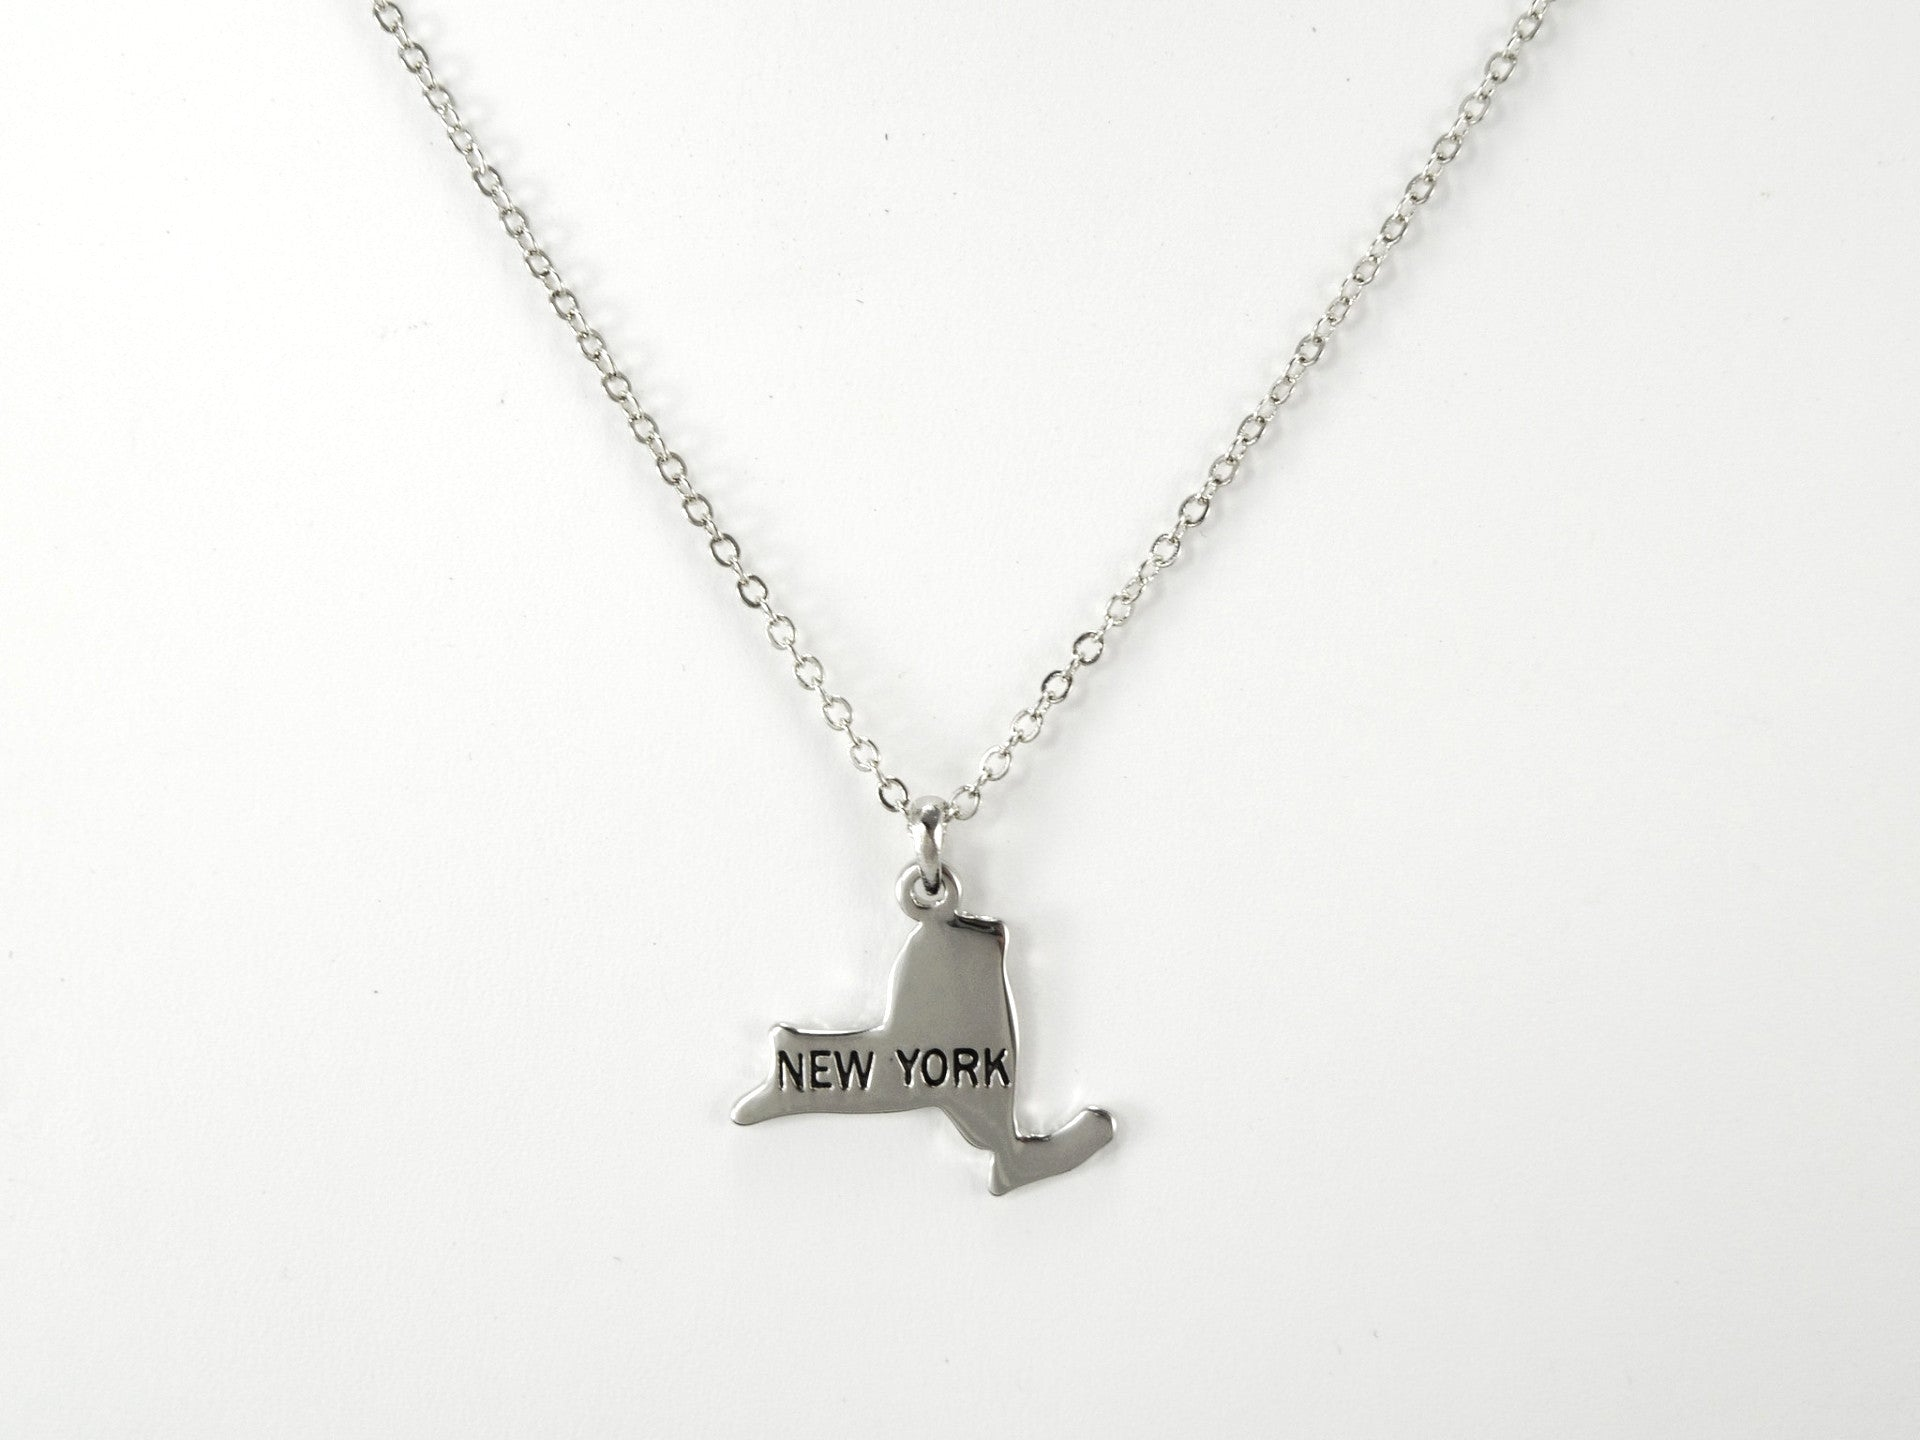 New York Silver Necklace